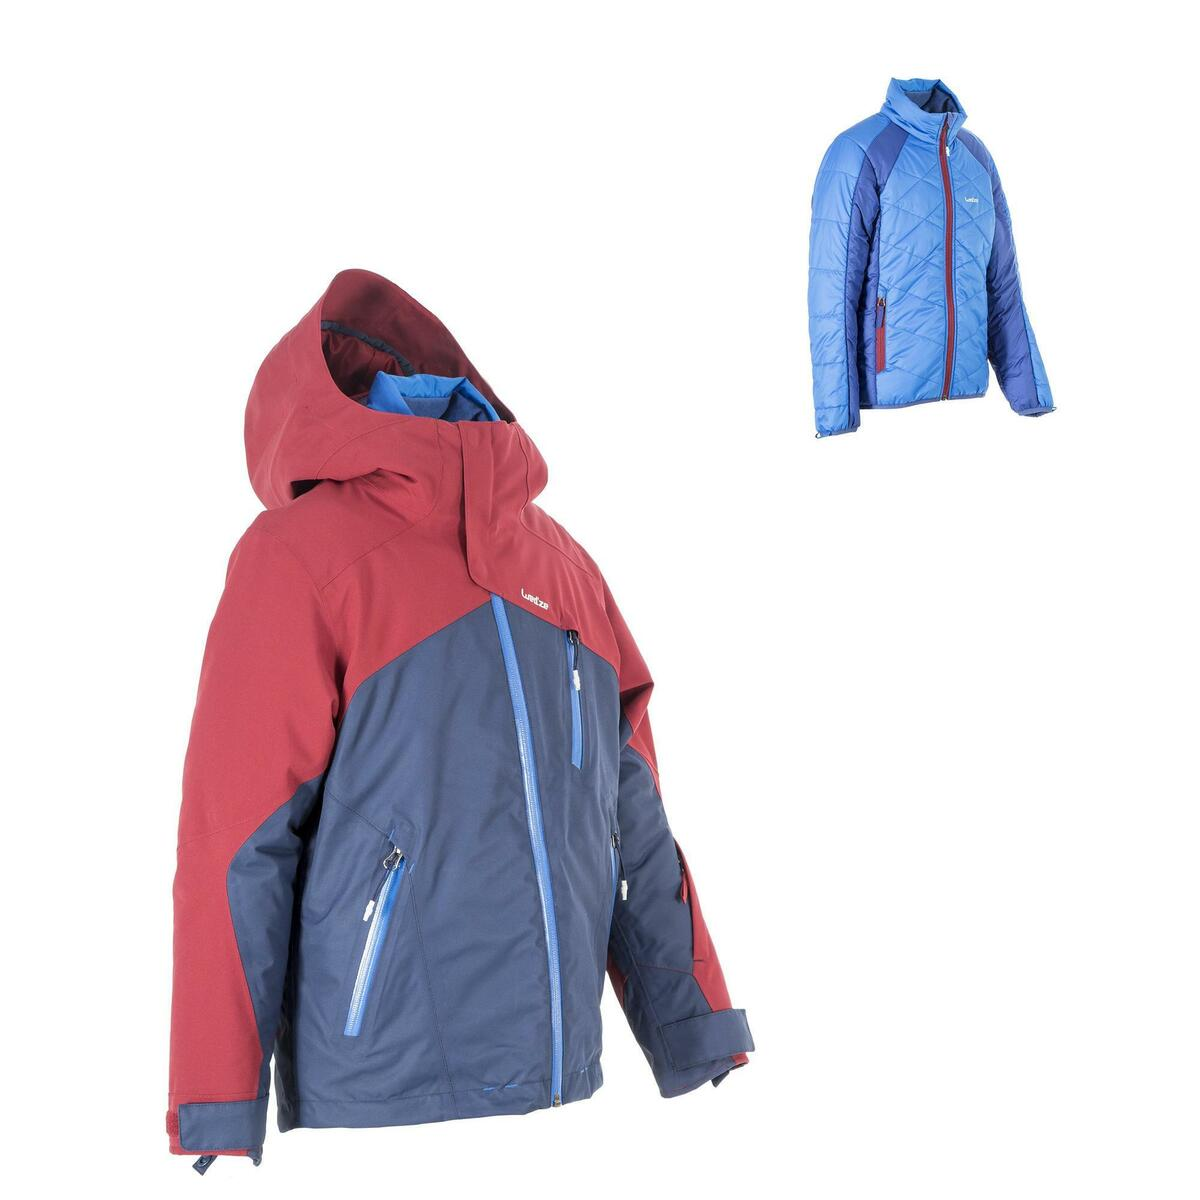 Bild 1 von Skijacke All Mountain Kinder 990 blau bordeaux